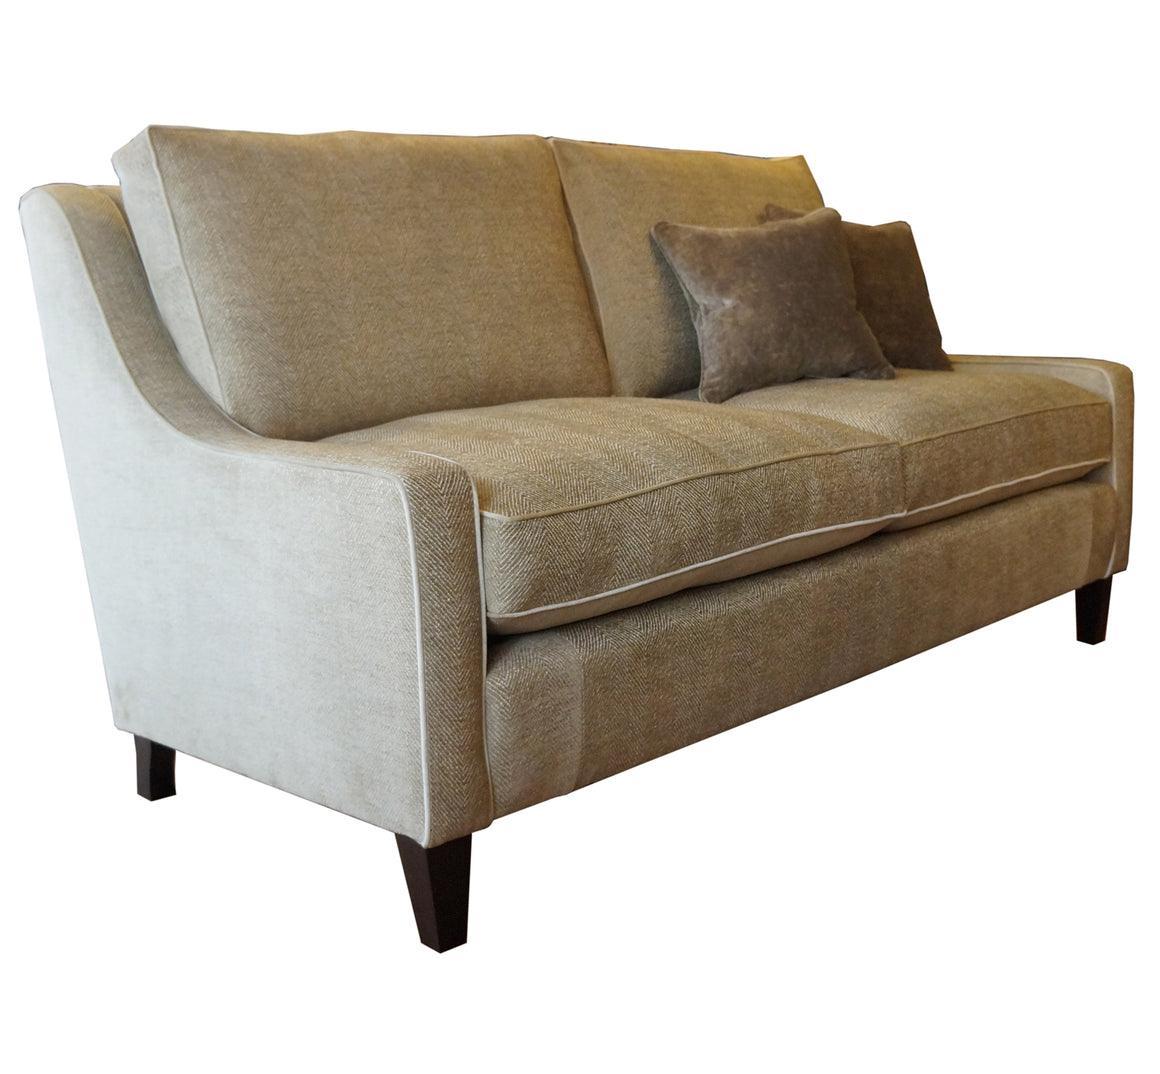 Marlow sofas and chairs in GP&J Baker Fairford HALF PRICE TO ORDER